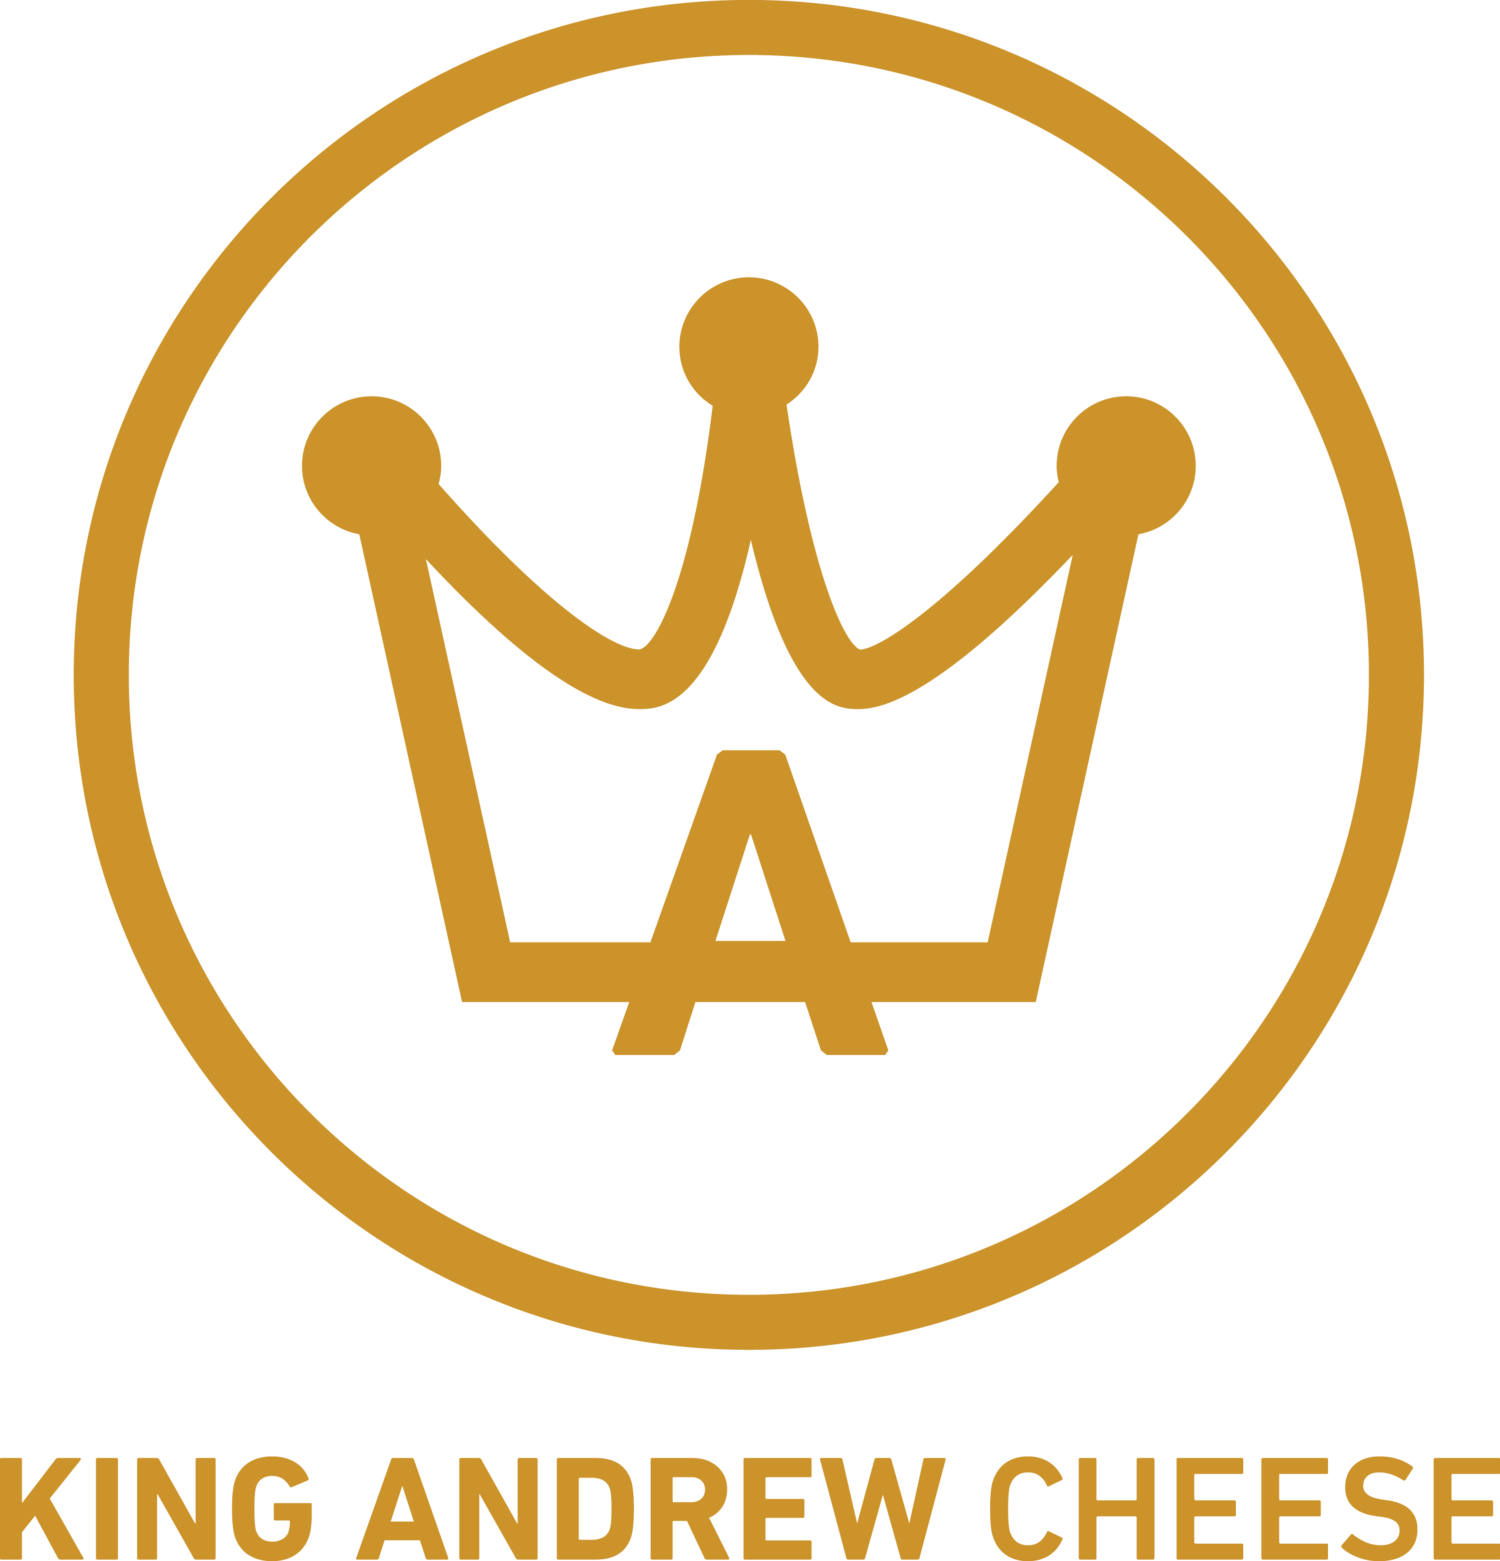 KING ANDREW CHEESE